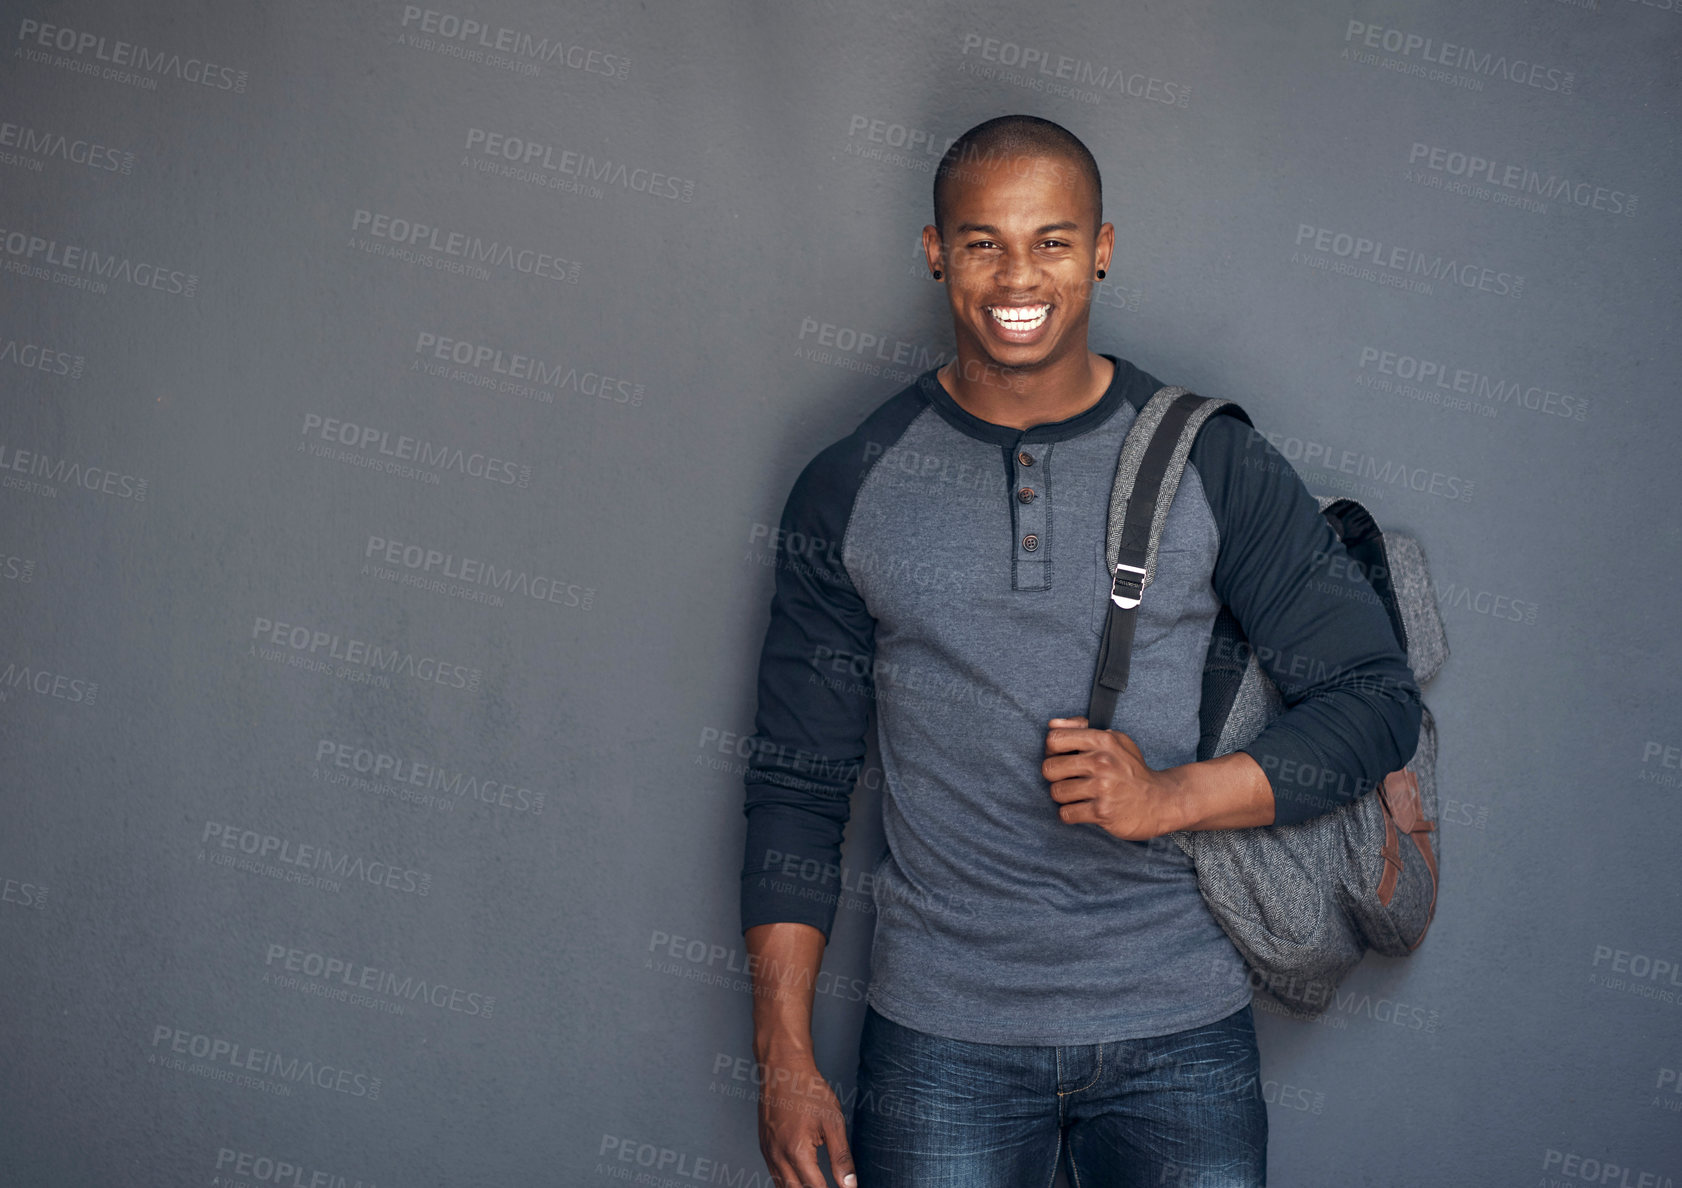 Buy stock photo Studio portrait of a young man carrying a schoolbag against a grey background